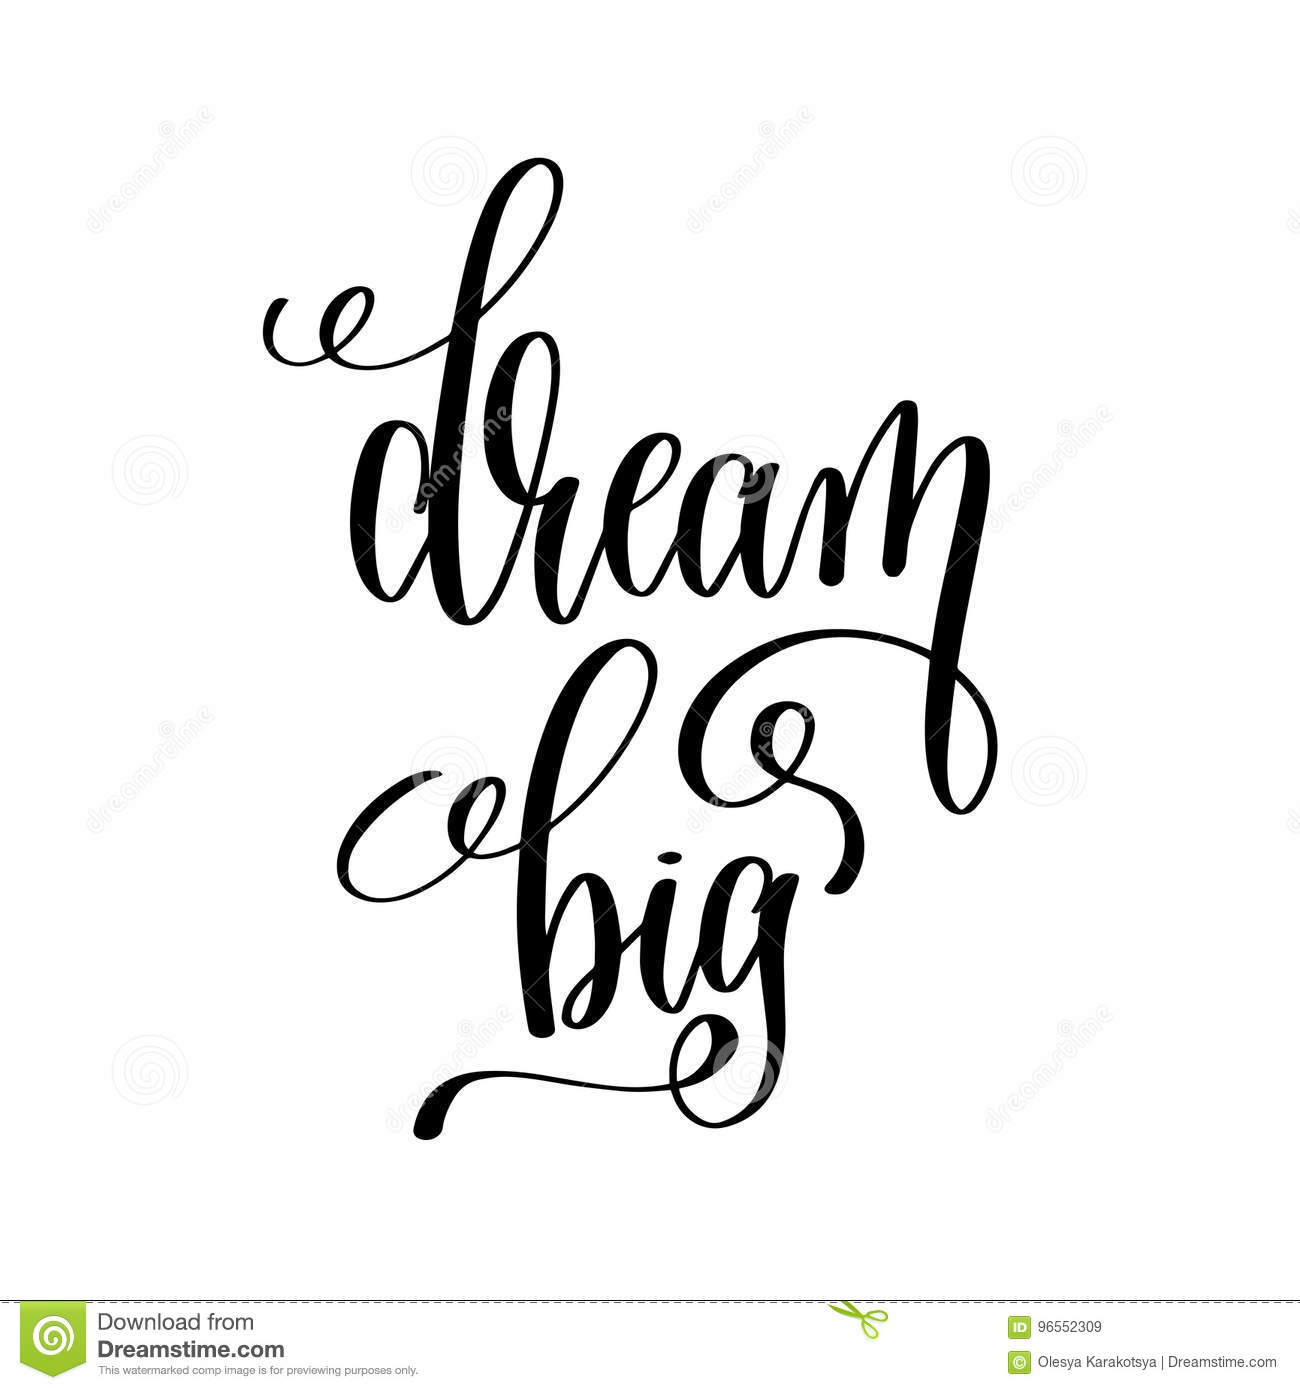 Dream big black and white hand written lettering positive quote